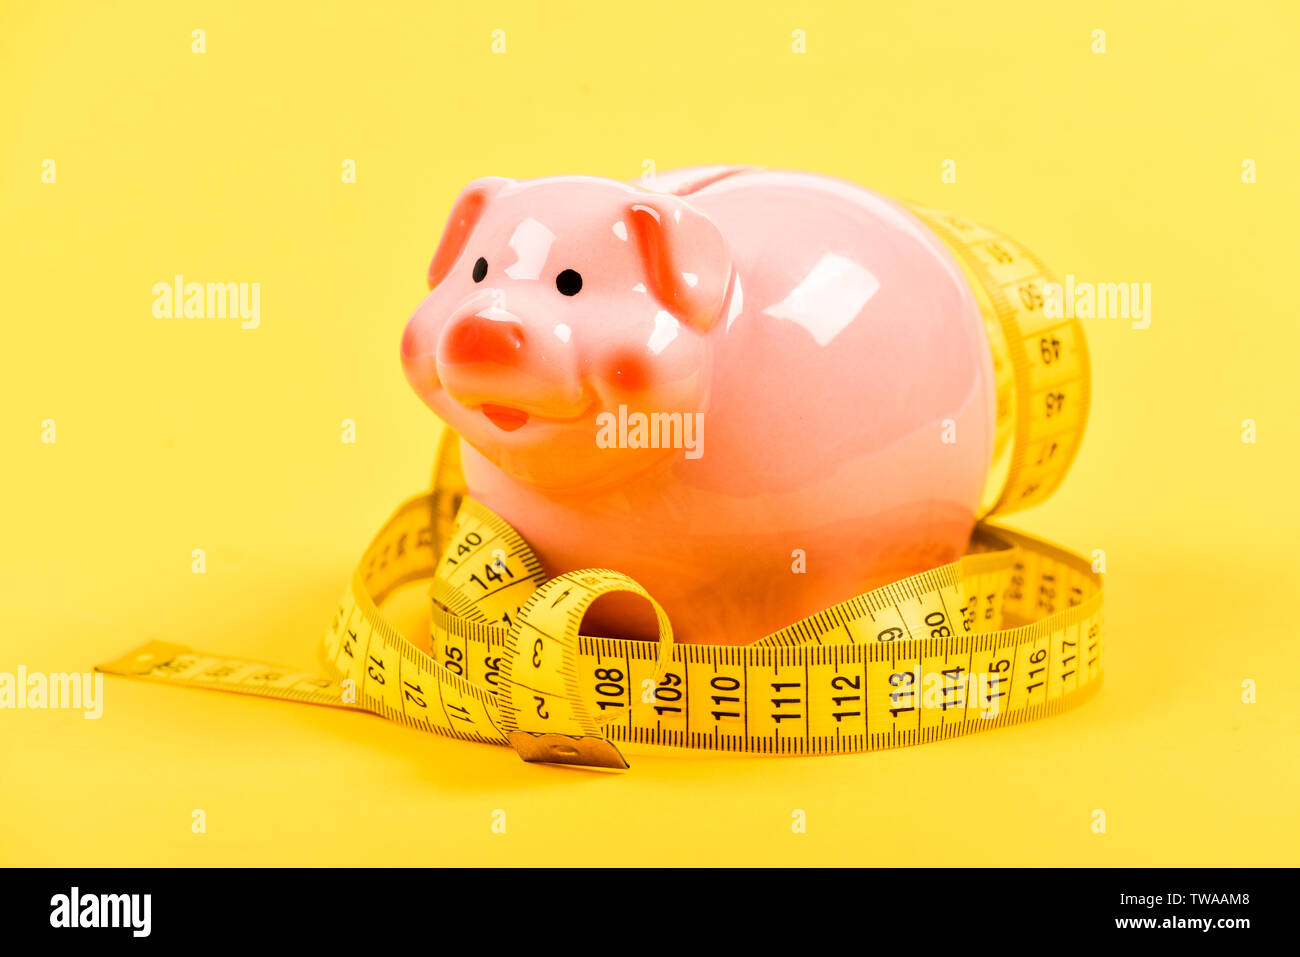 exigency. low pay. Saving money. Deposit. money diet. finance and commerce. piggy bank with measurement tape. Moneybox. loan concept. Take credit. Economy and budget increase. - Stock Image